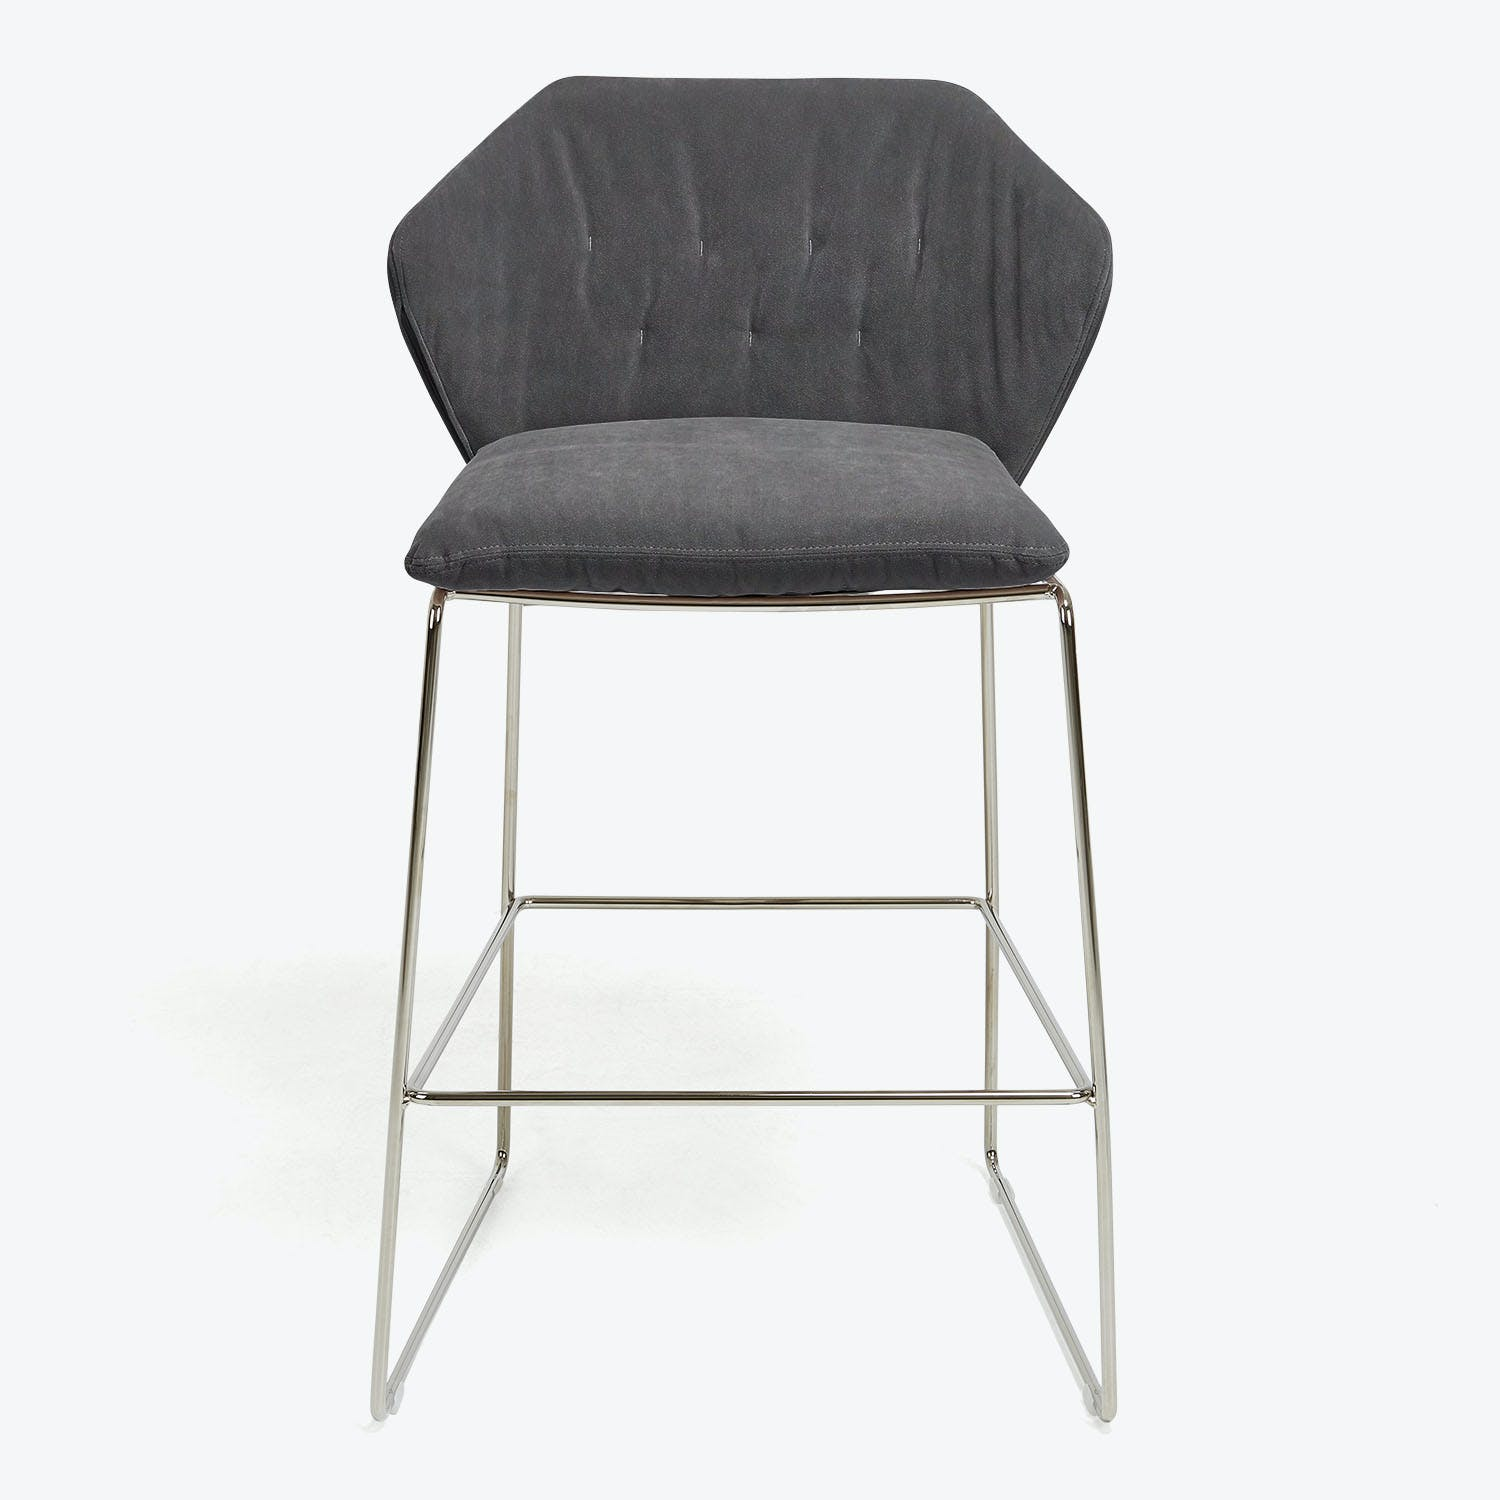 Product Image - New York Sedia Counter Stool